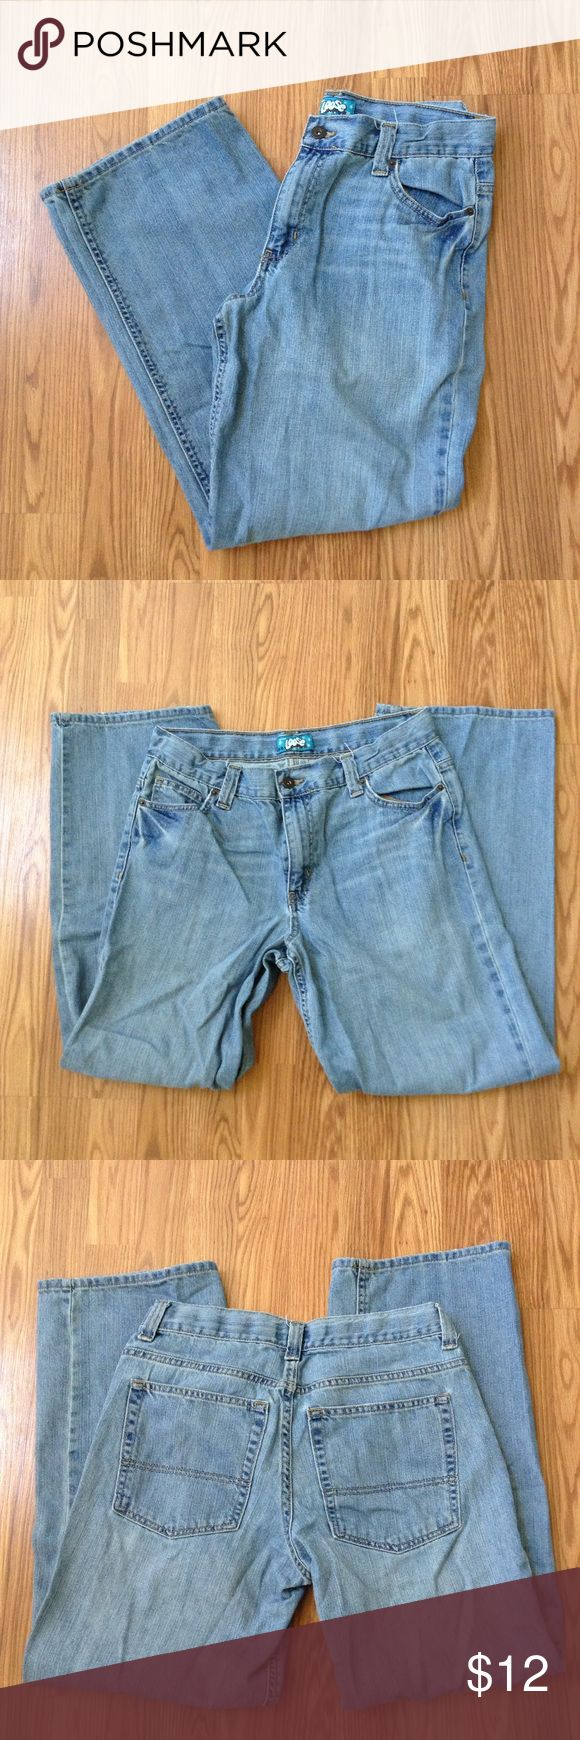 Old Navy Youth Boys Loose Jean Loose jean, zip fly, adjustable waist. 100% cotton. Size 18 HUSKY Condition: good. Actual color of items may vary from picture. Bottoms Jeans